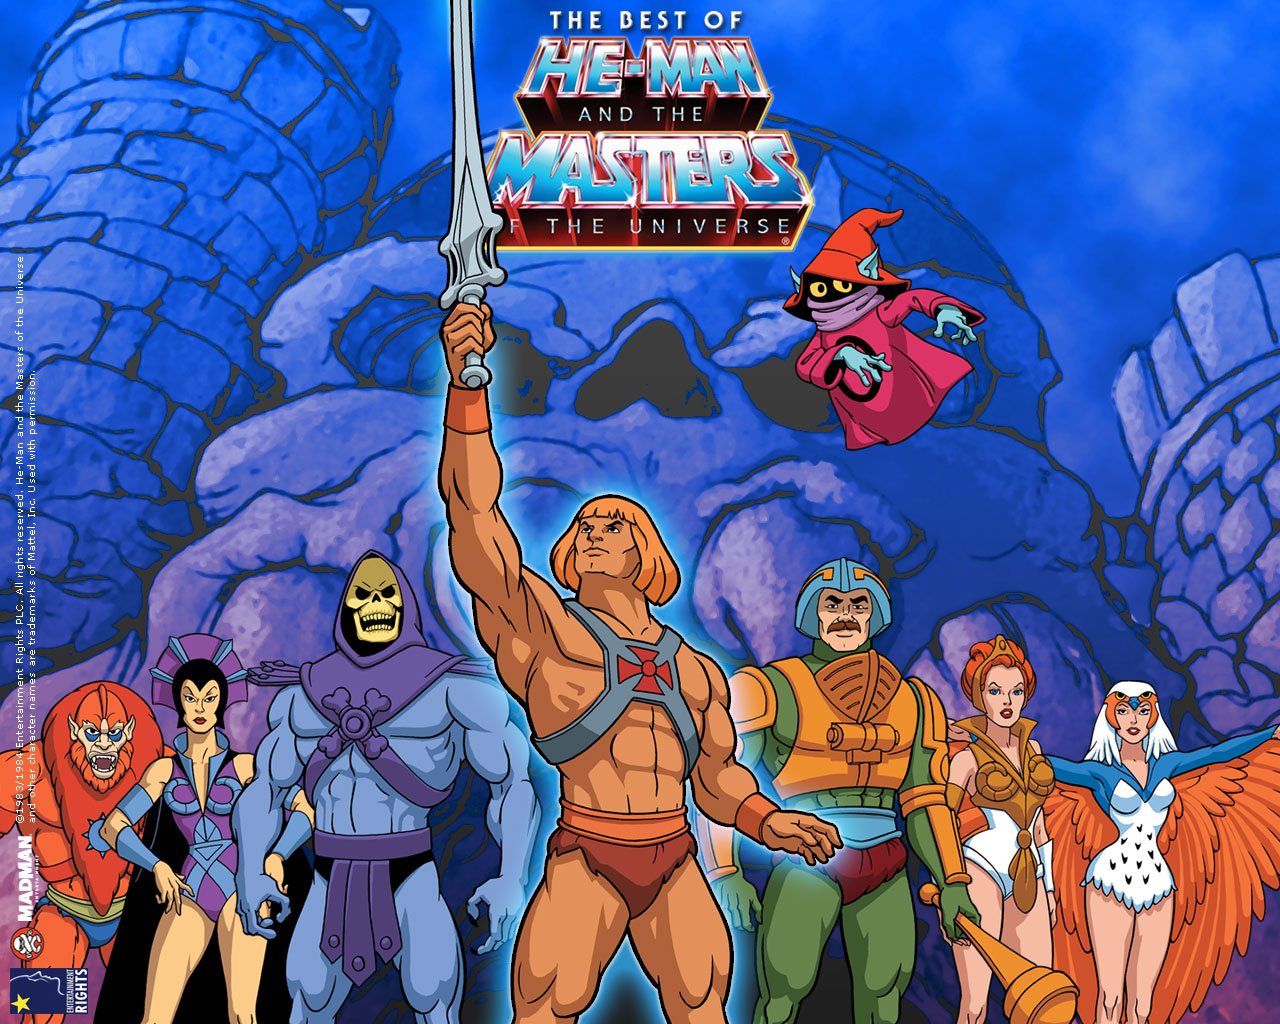 https://i0.wp.com/m.cdn.blog.hu/cl/classic-cartoon/image/he-man.jpg